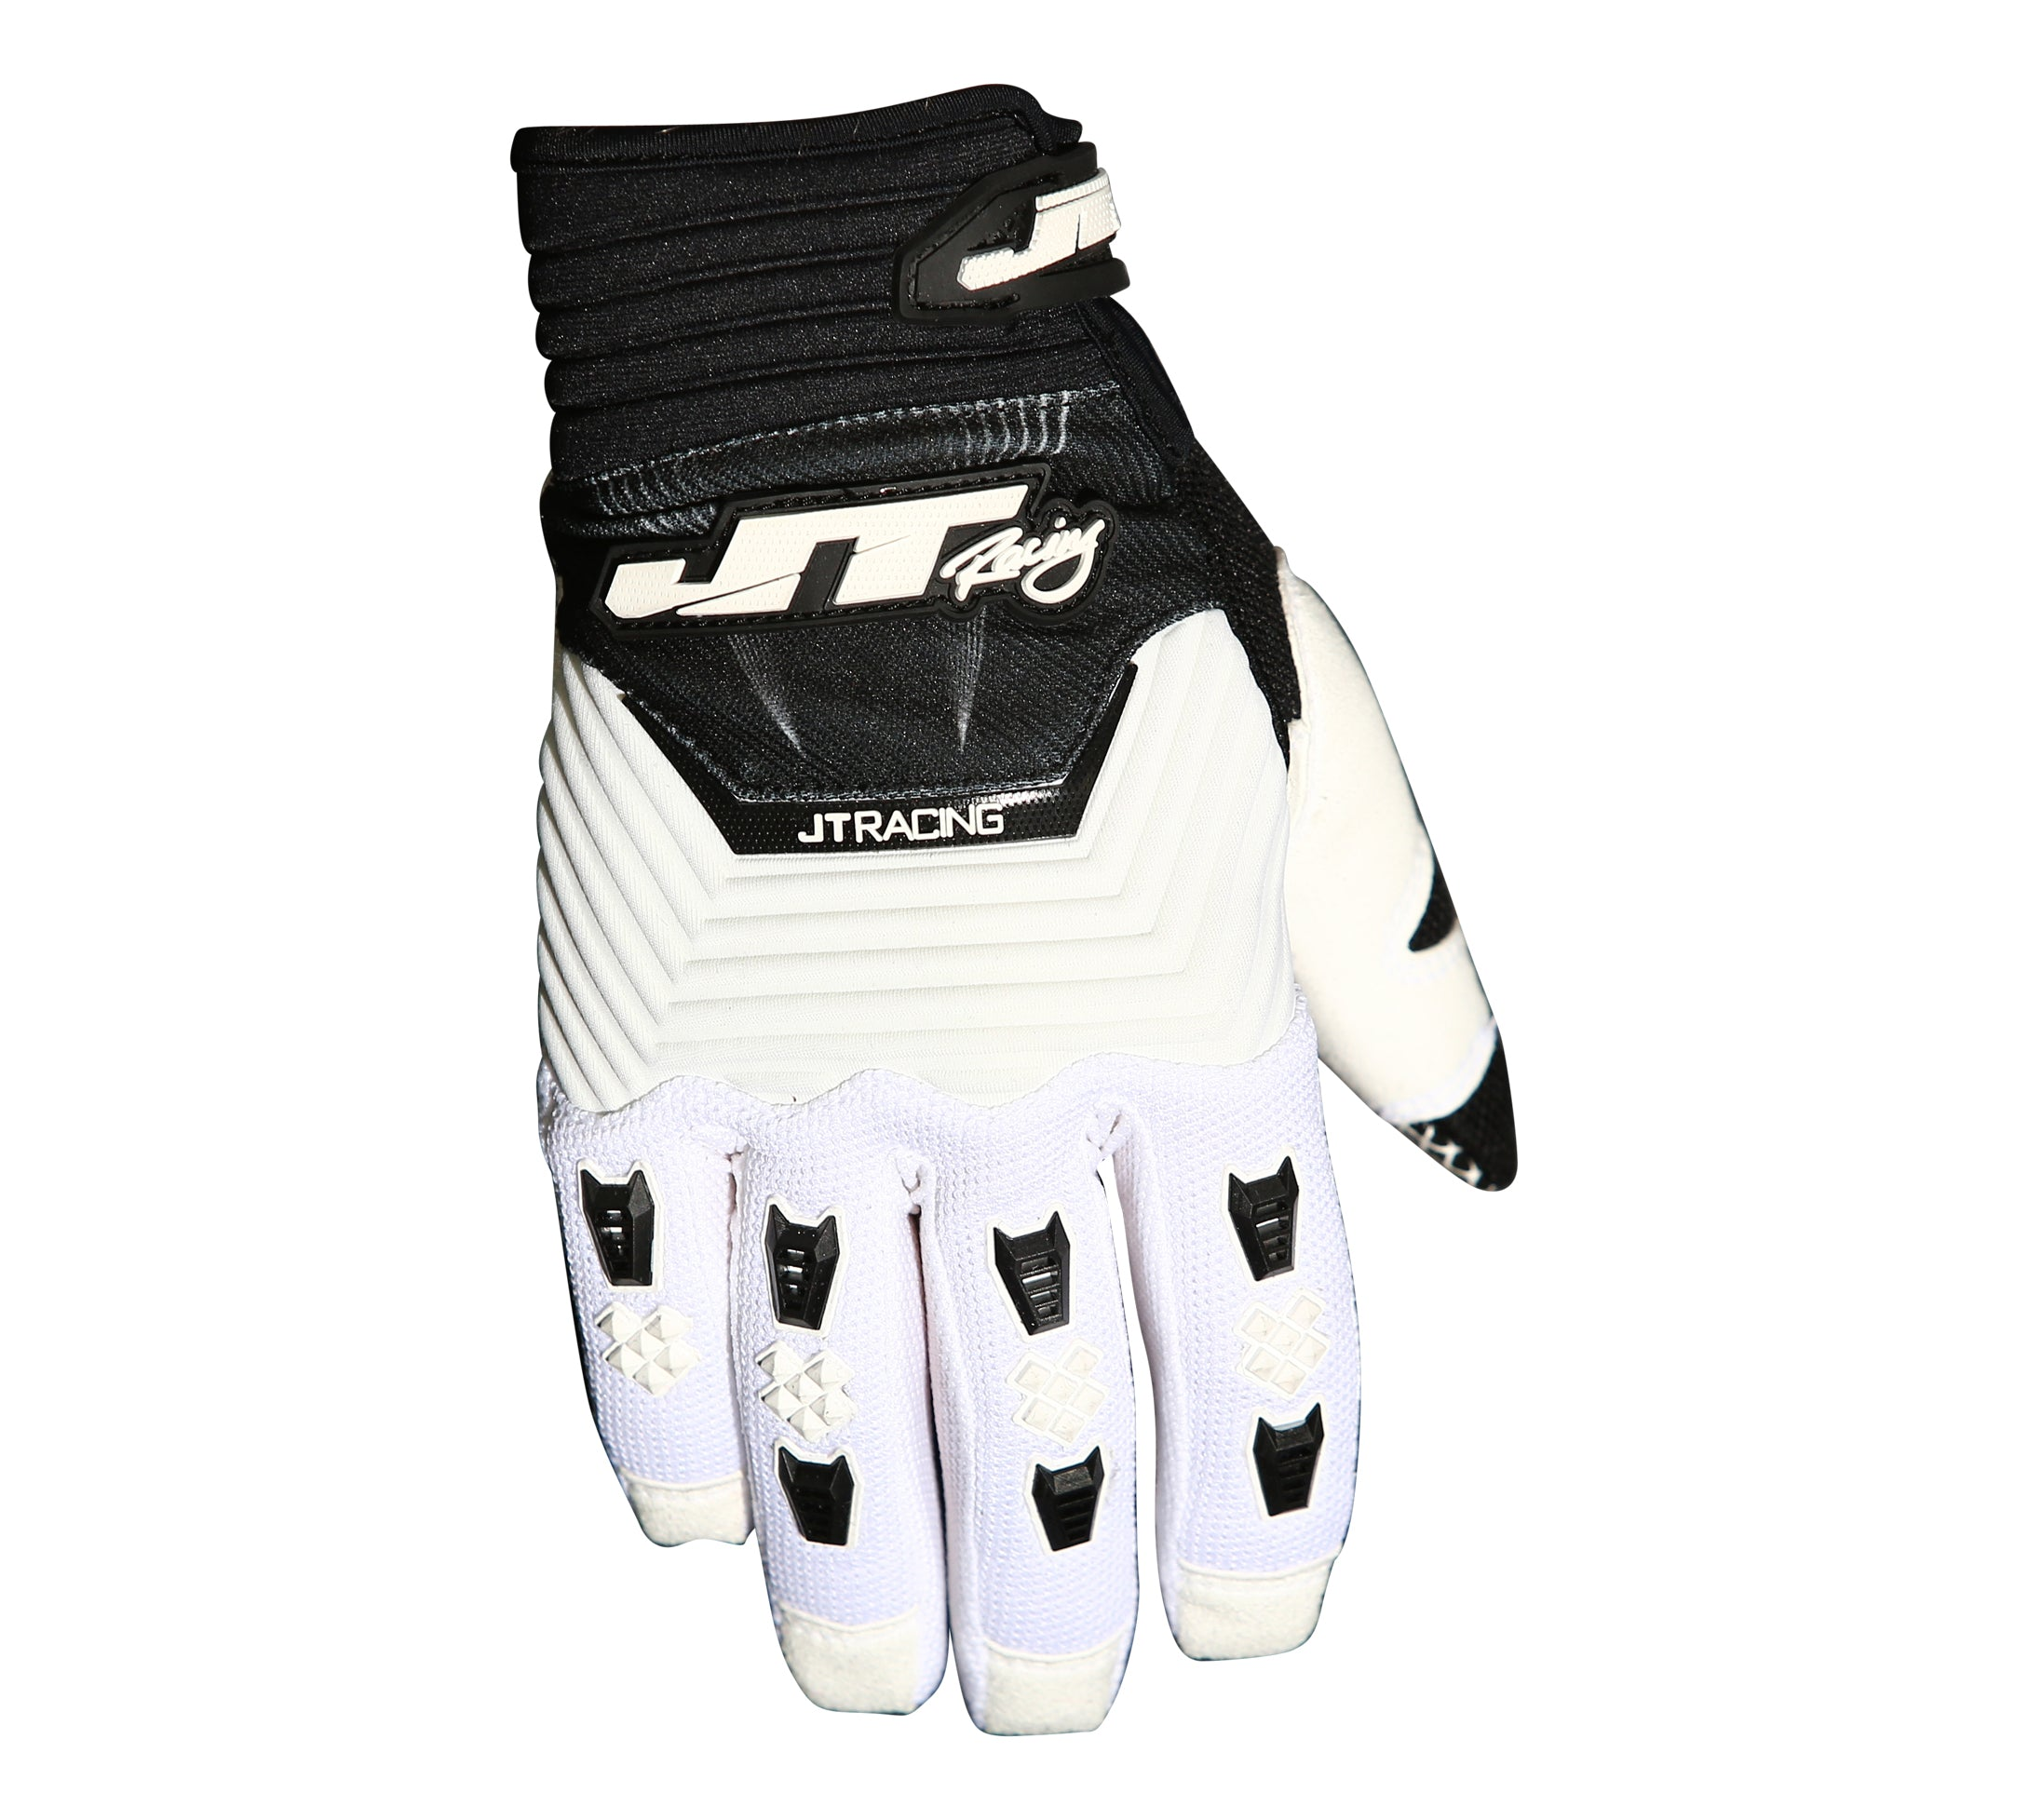 JT Racing Throttle Gloves, Black/White